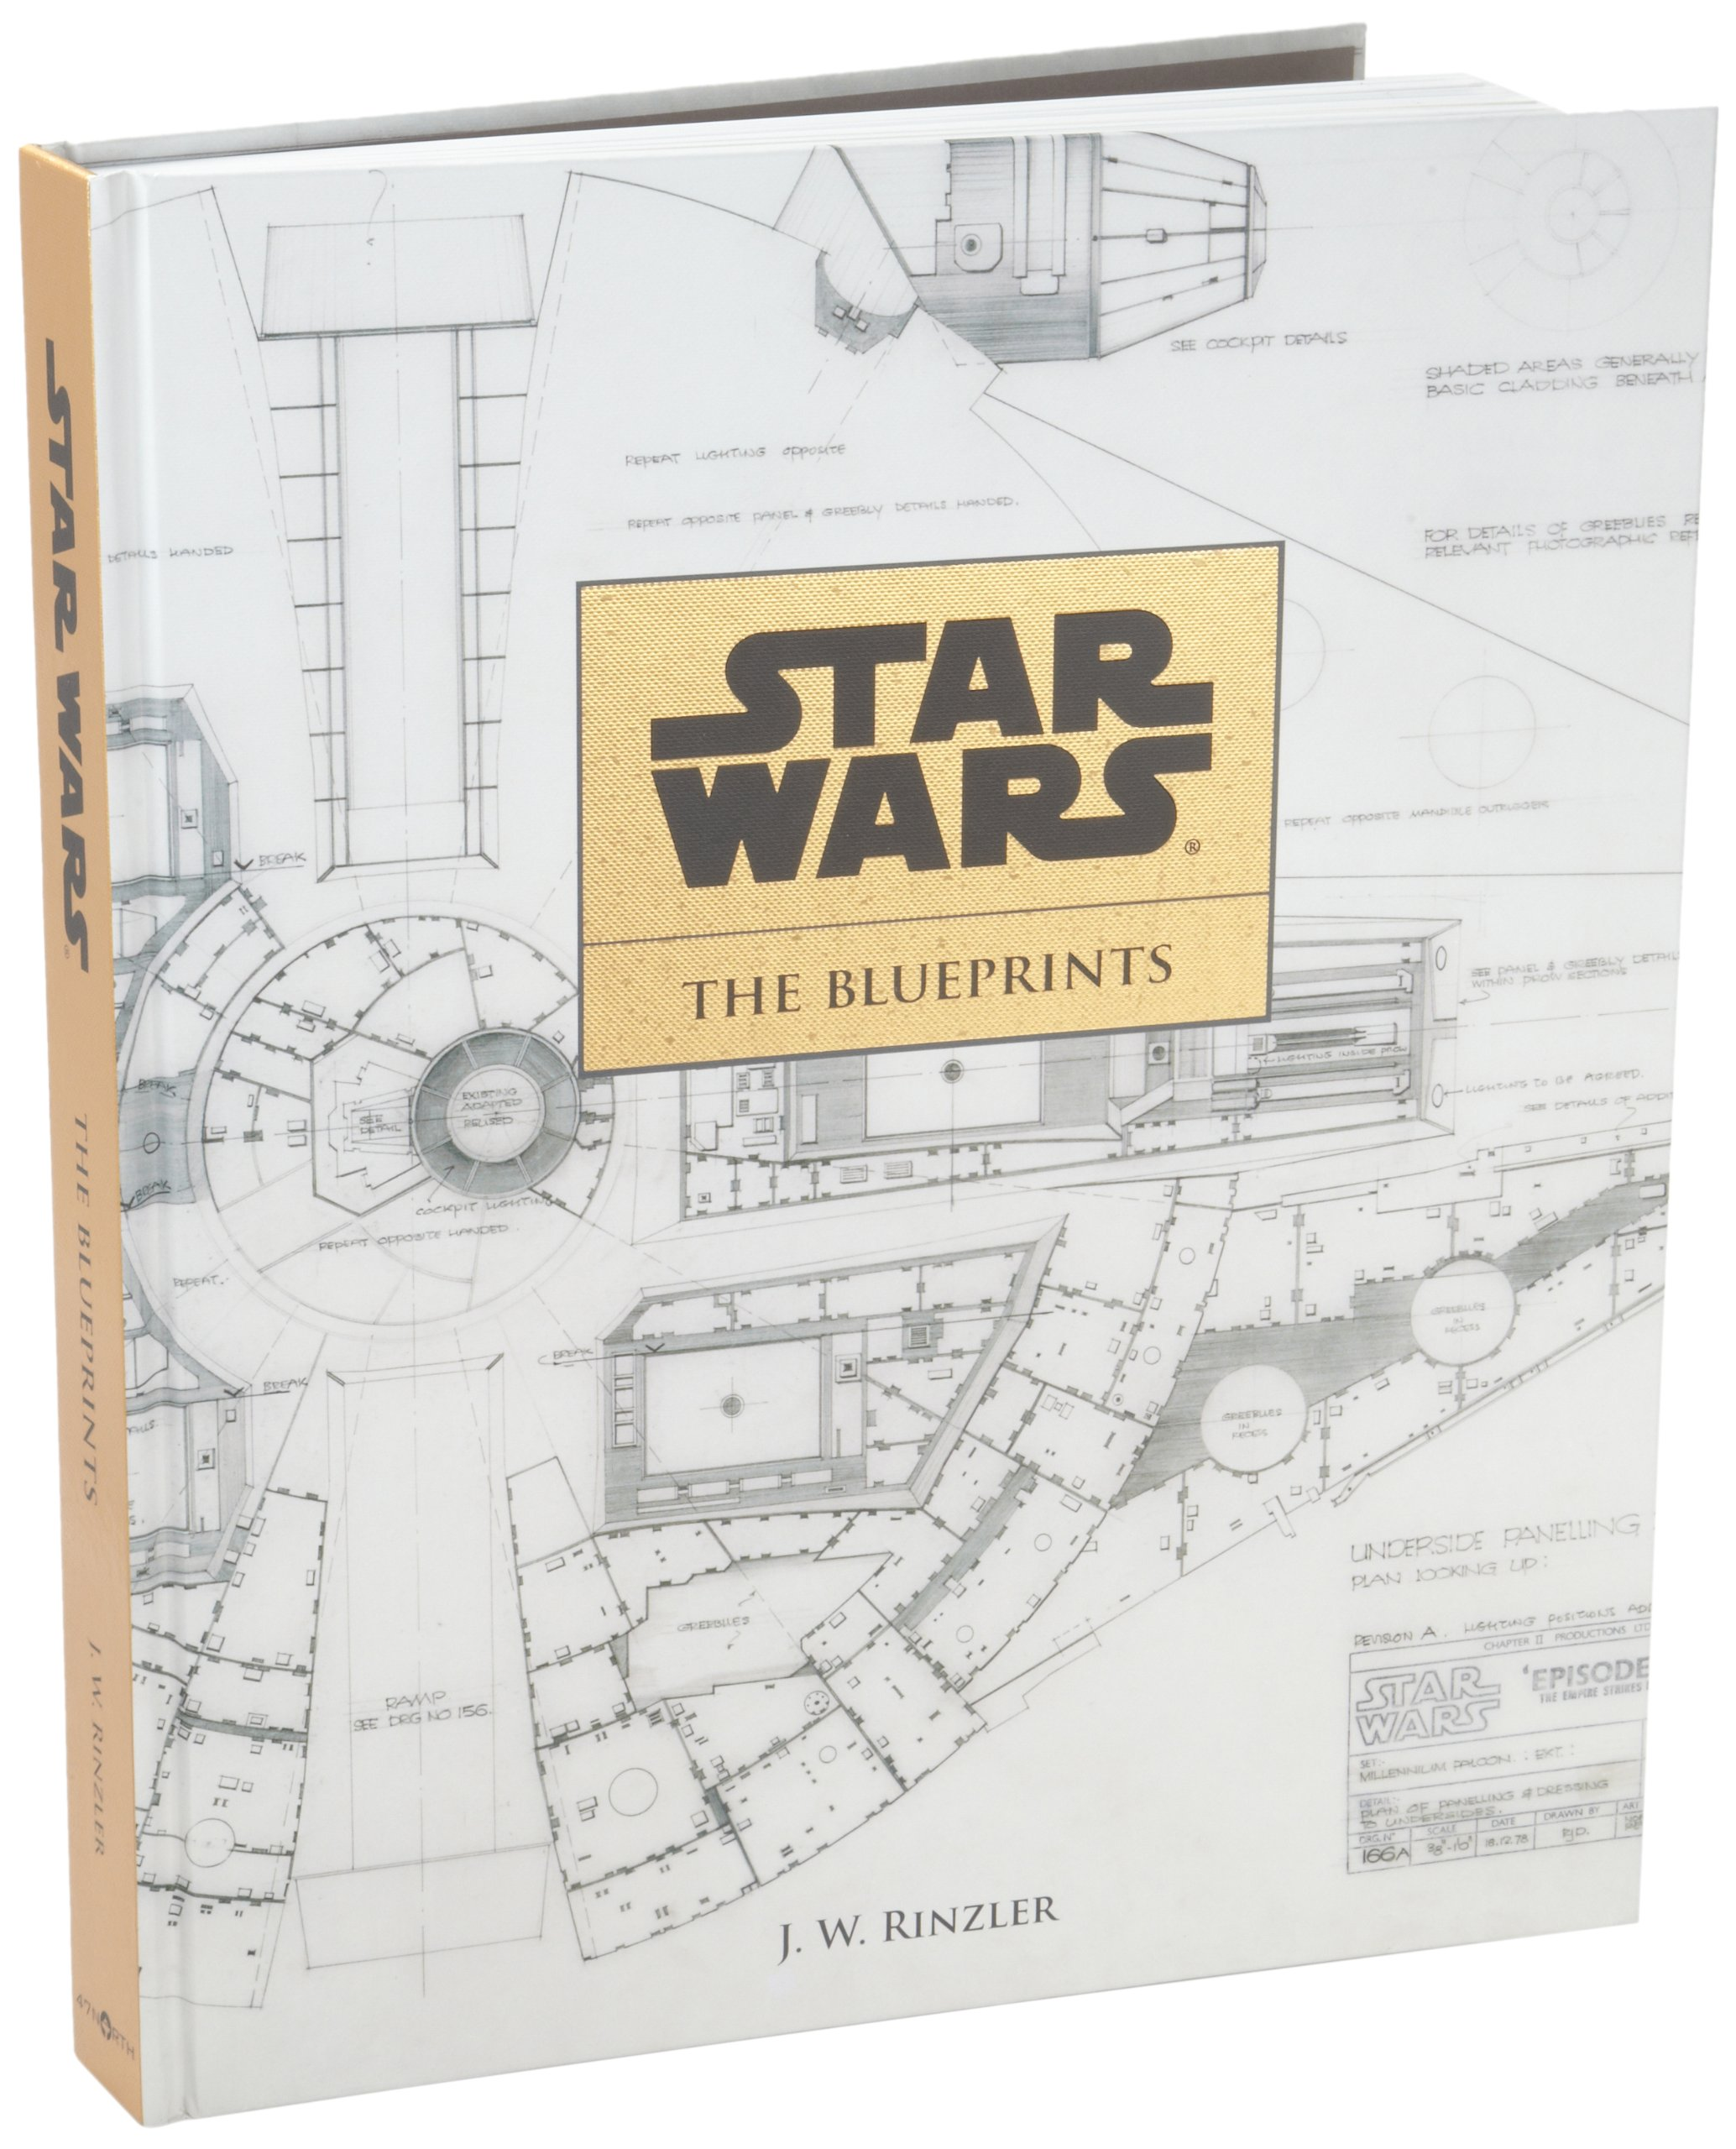 Star wars the blueprints wookieepedia fandom powered by wikia malvernweather